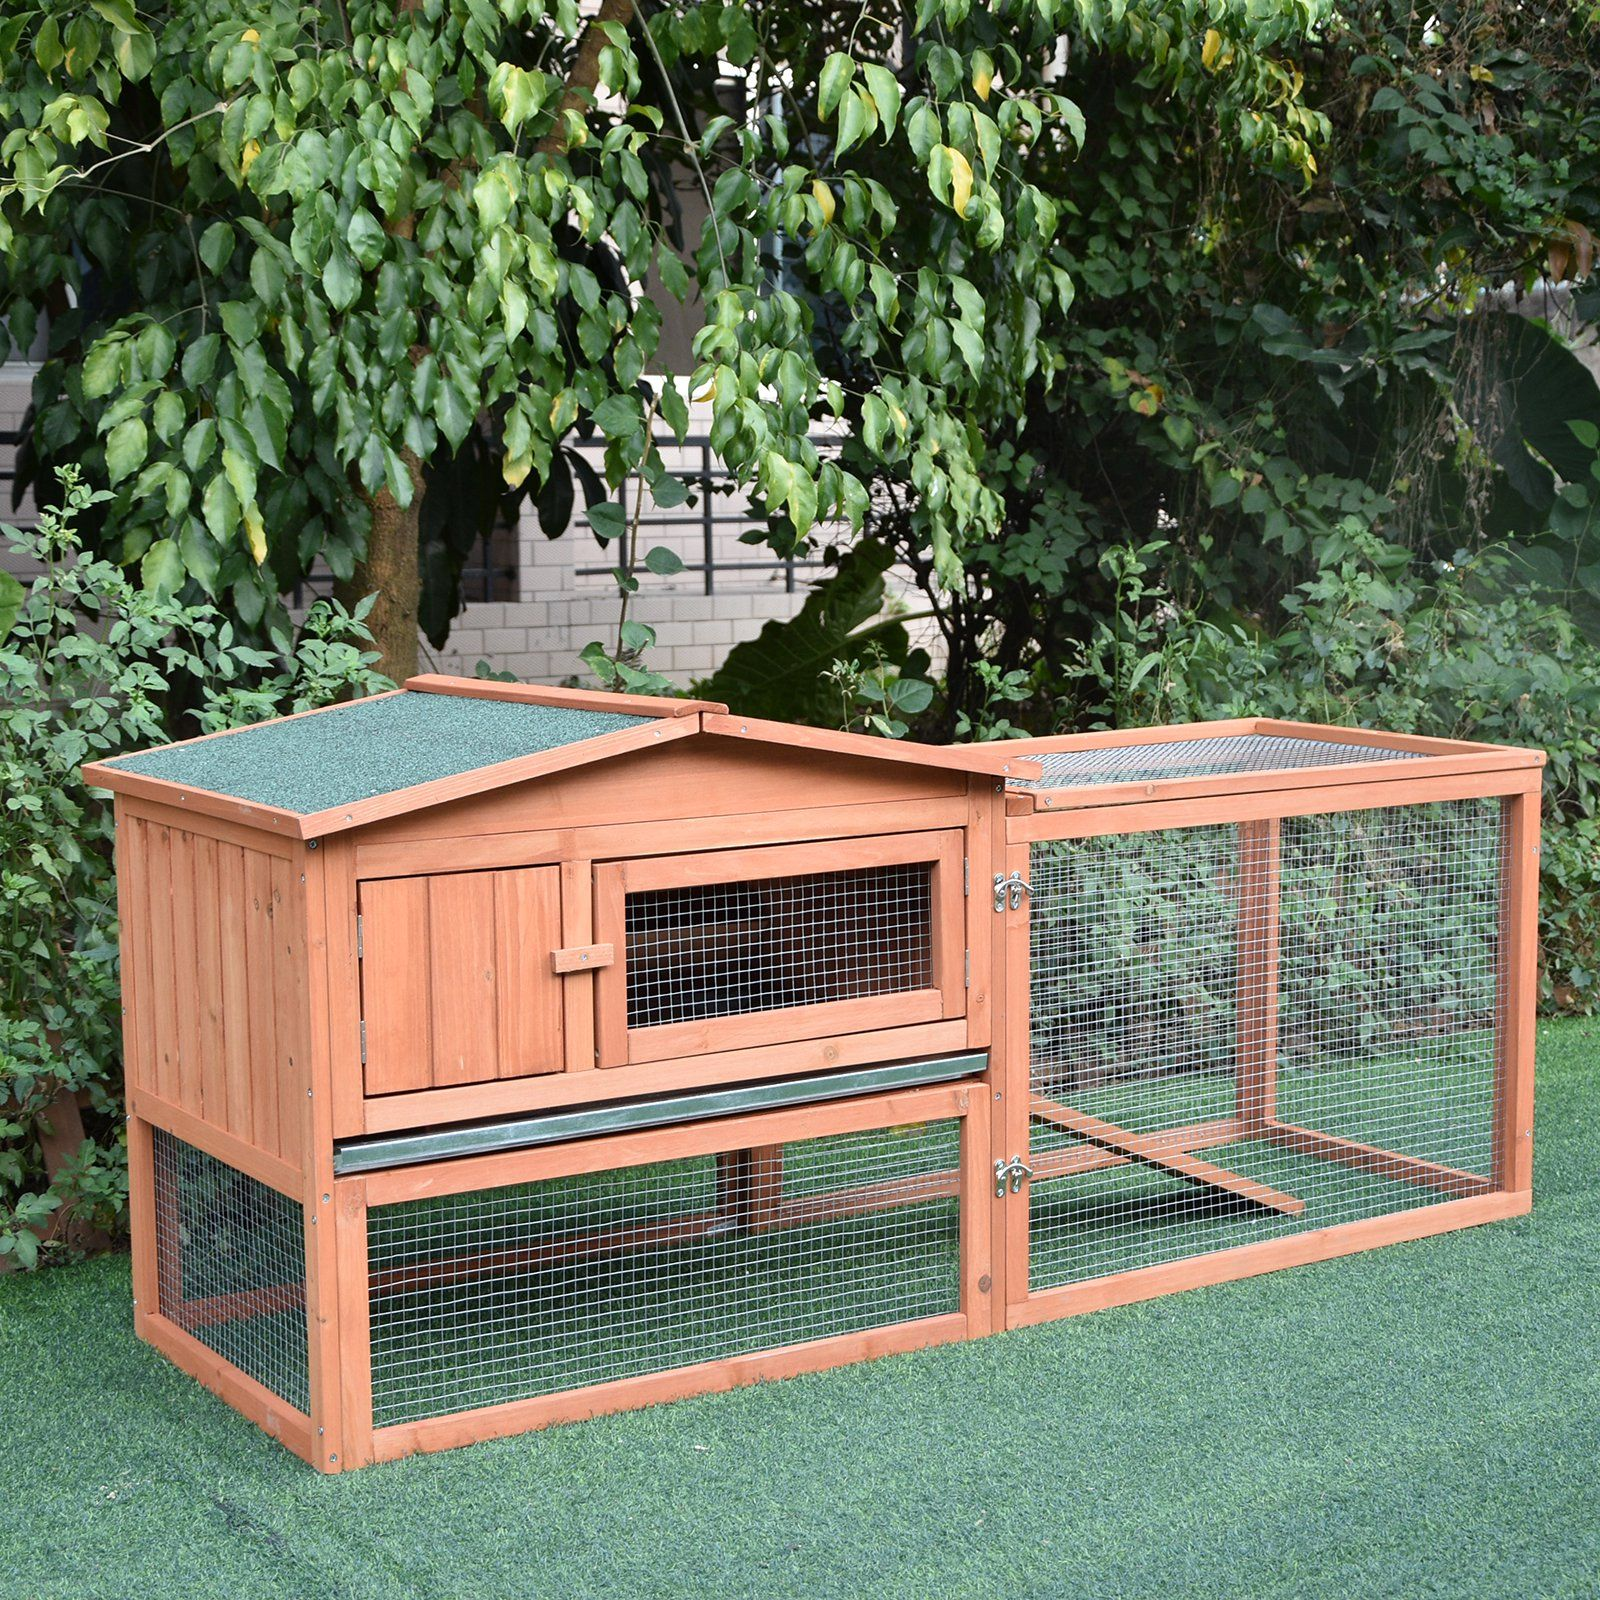 Pawhut 62 Wooden Outdoor Guinea Pig Pet House Rabbit Hutch Small Animal Habitat With Detachable Run And Elevated Main House Walmart